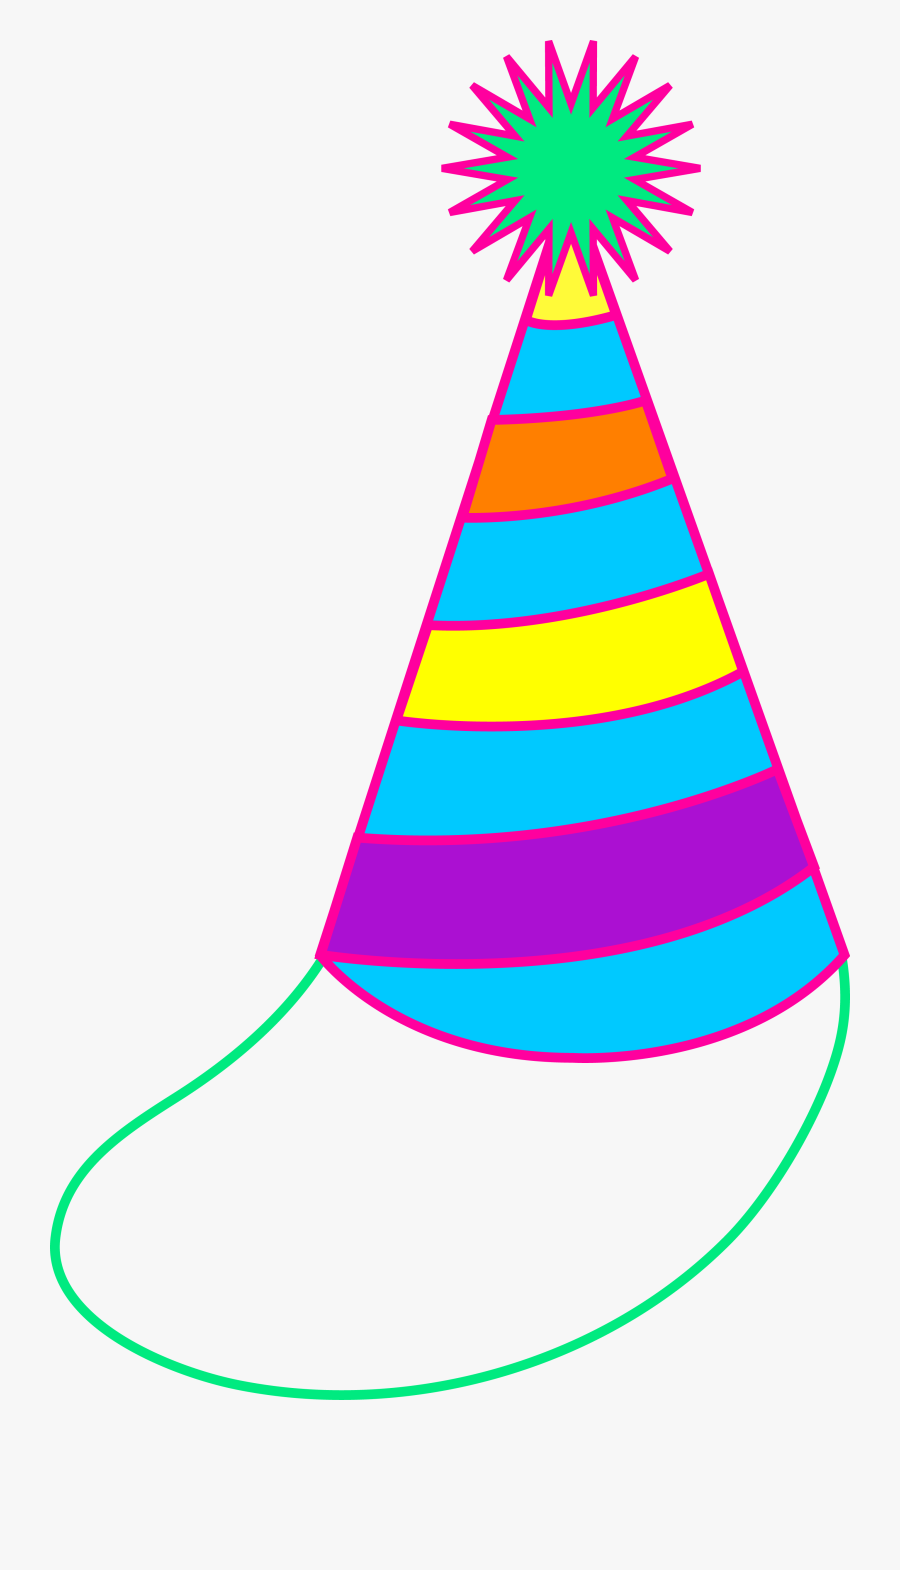 Colorful Party Hat - Birthday Party Hat Cartoon, Transparent Clipart